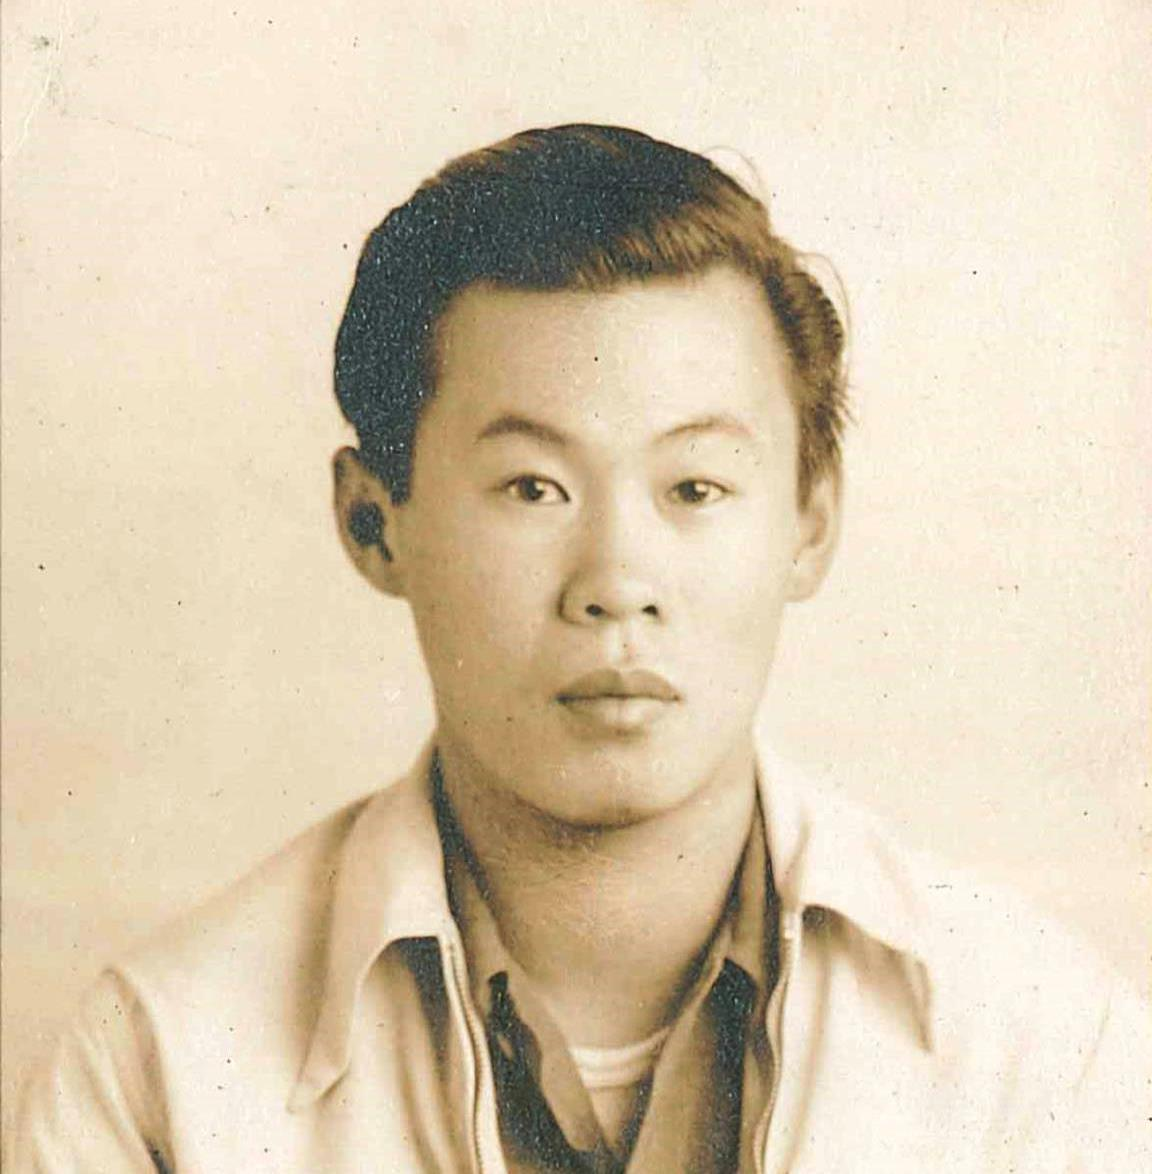 James Hong Chan